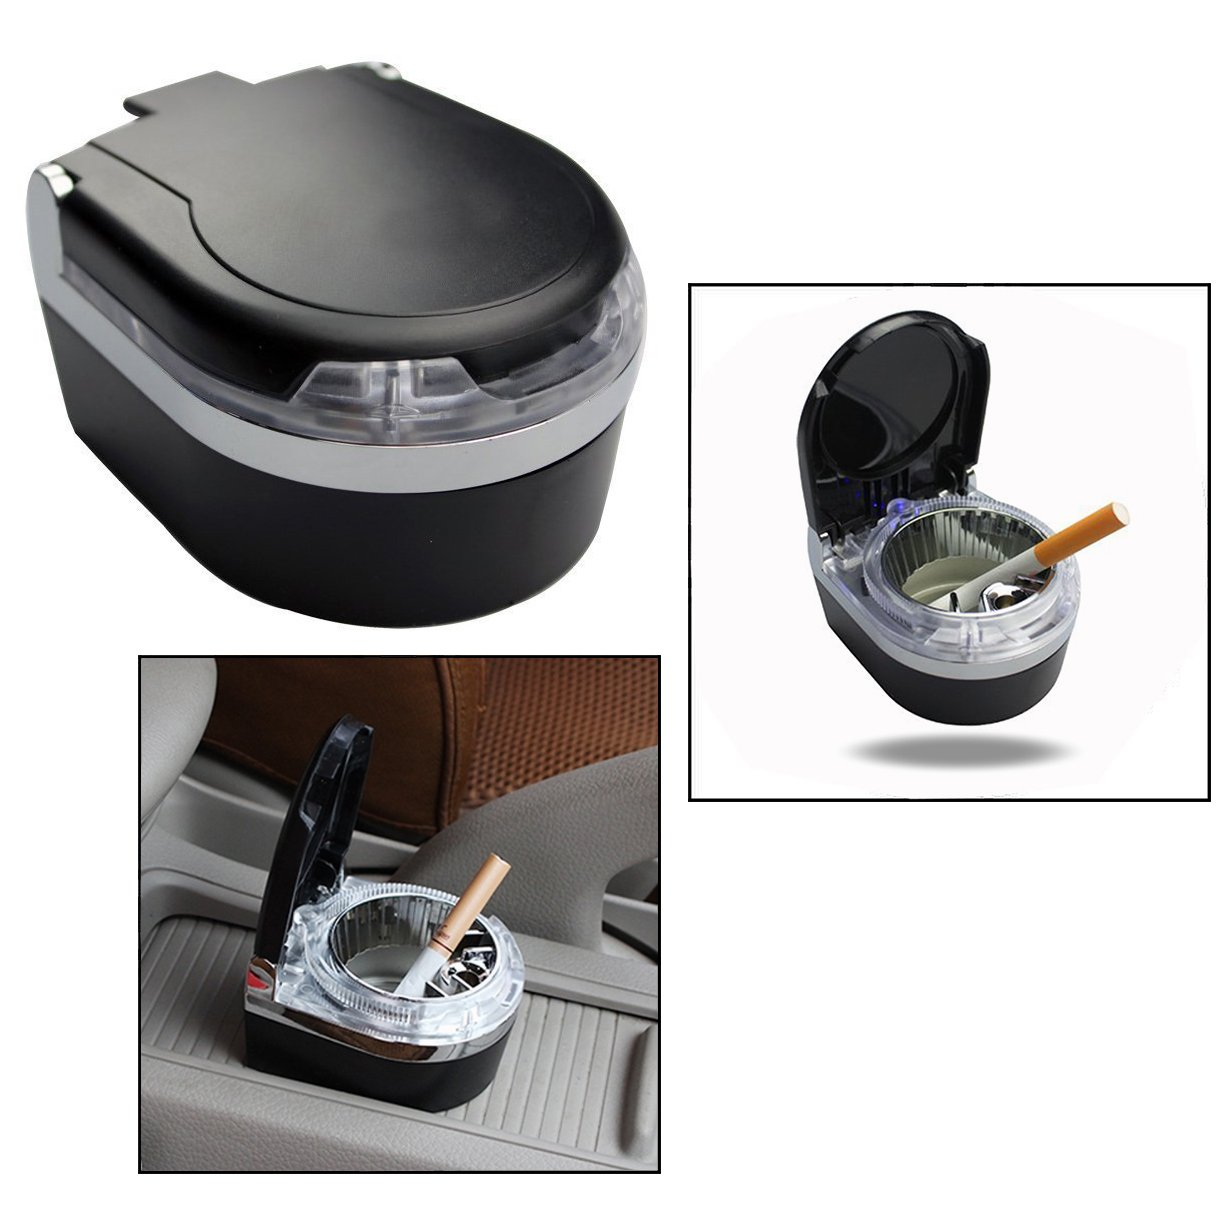 OFKP LED Portable Car Ashtray, Smokeless Car Ashtray for Car, Home, Office and Travel